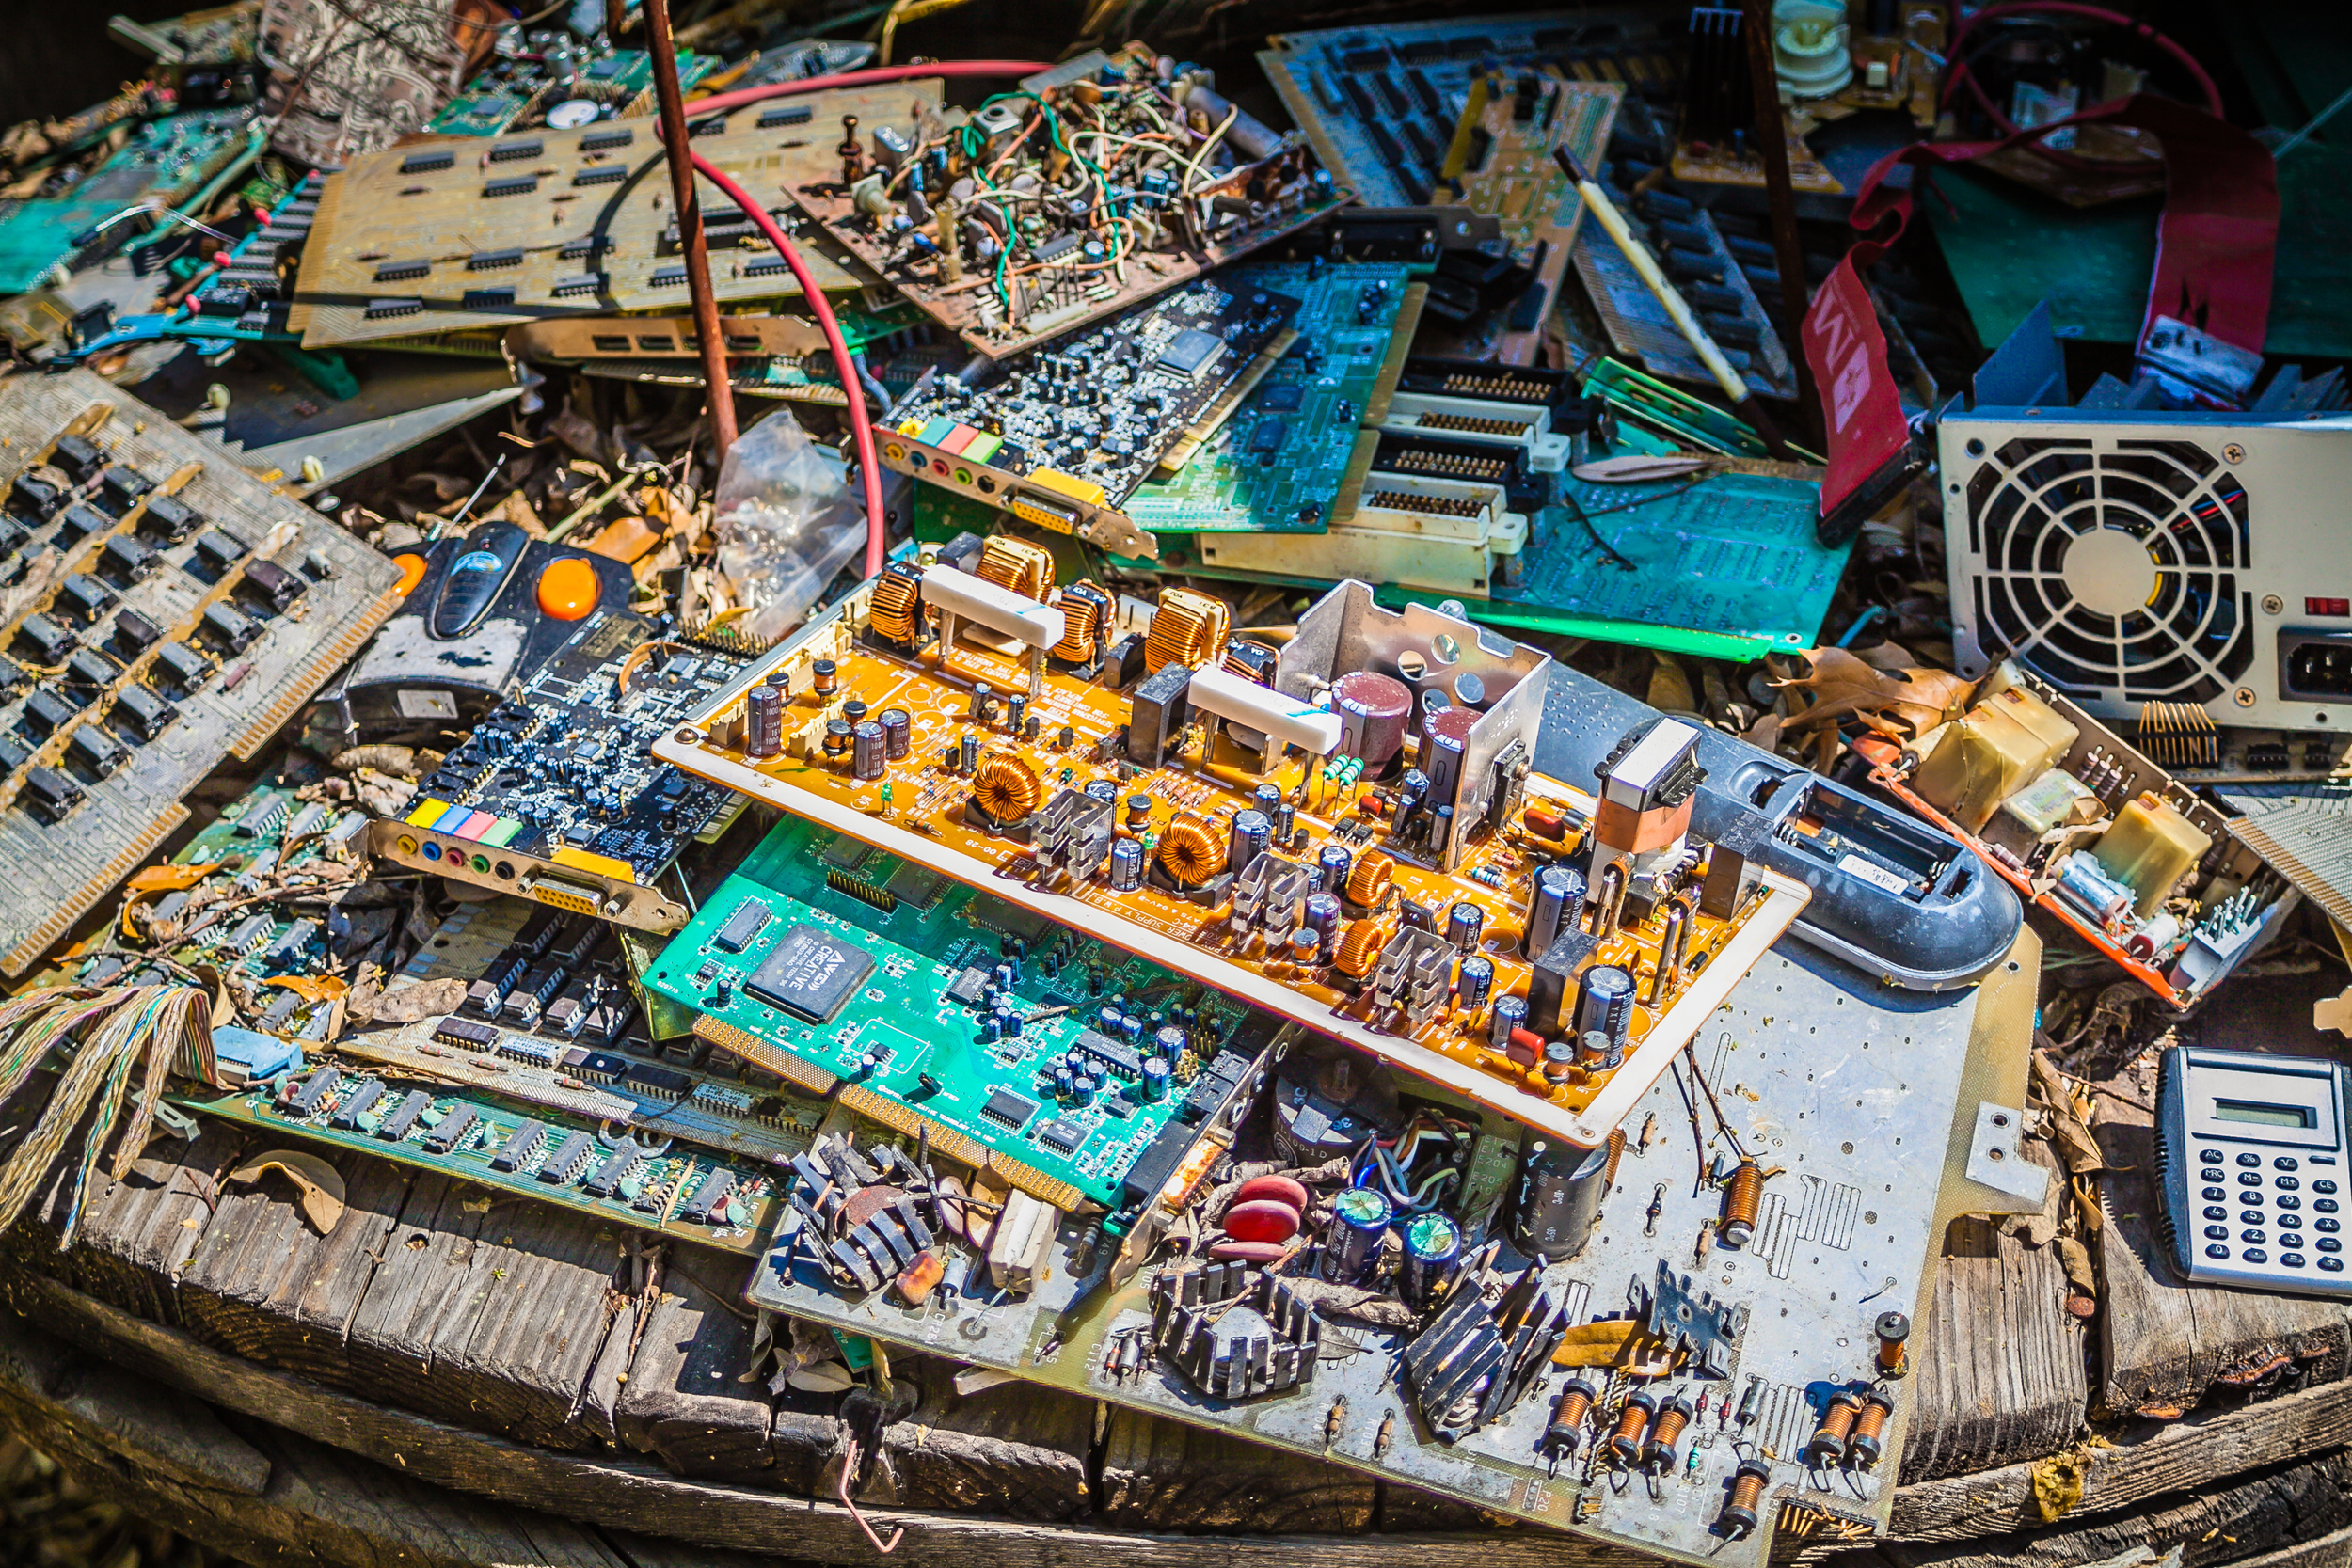 CathedralofJunk-13.jpg